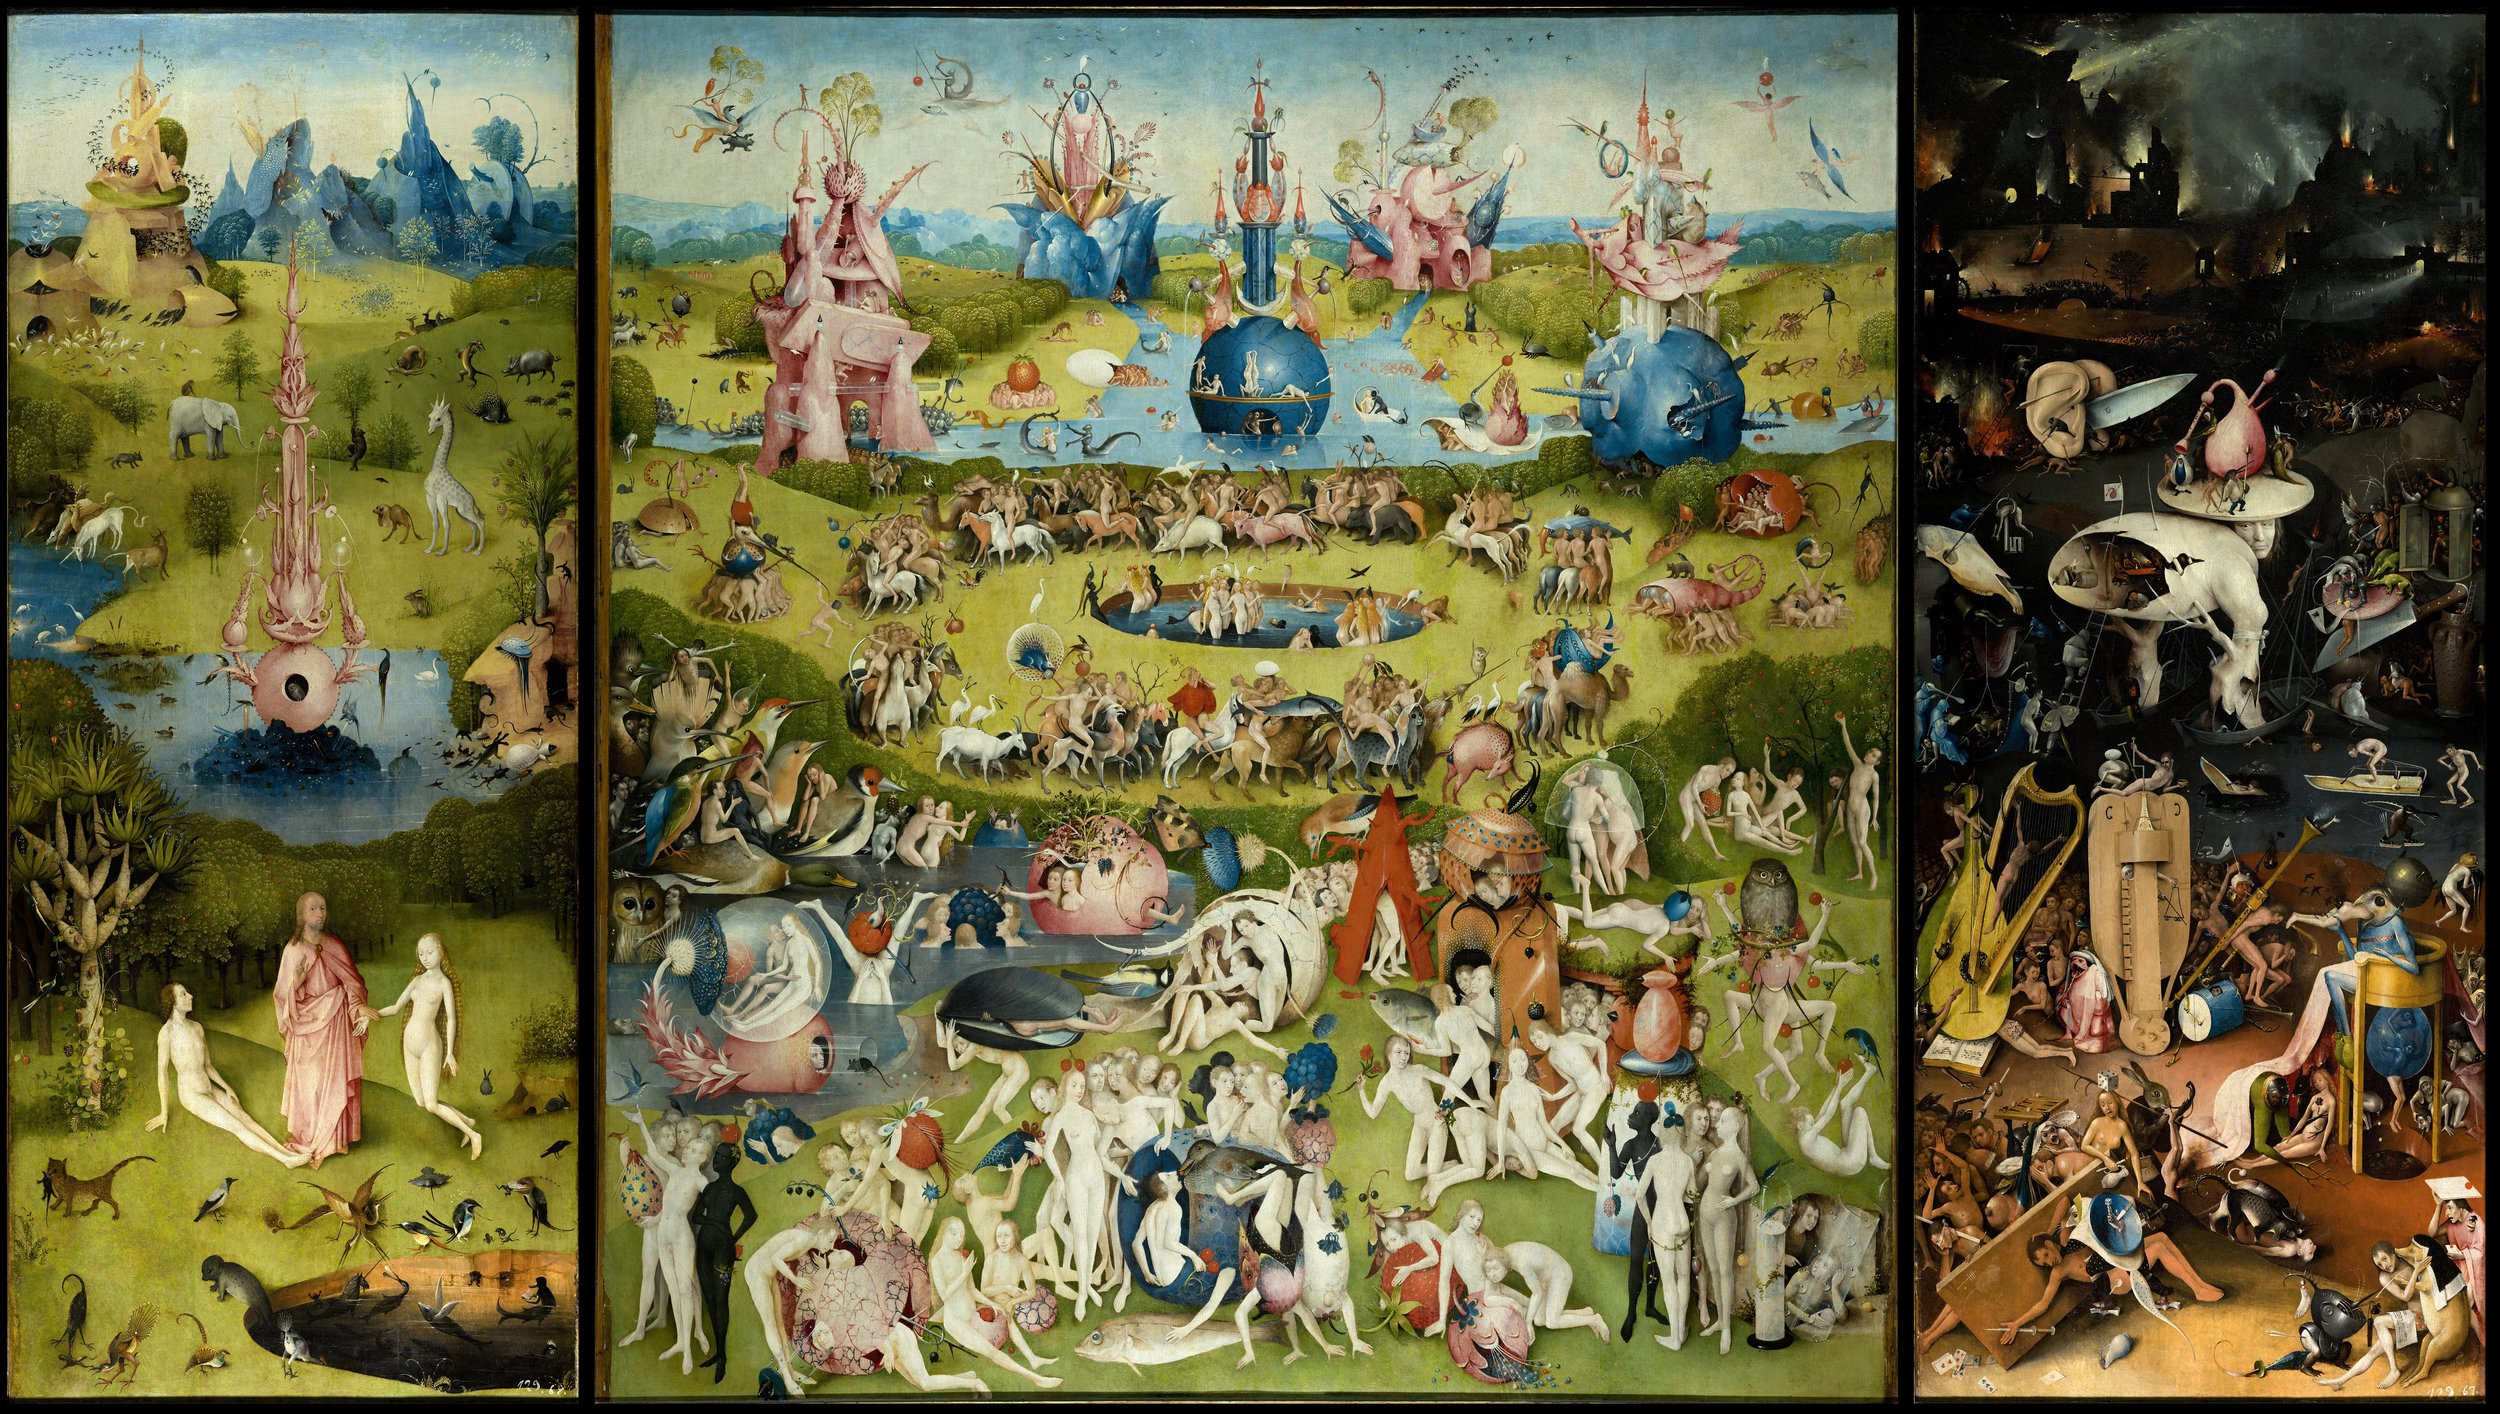 "In the triptych ""The Garden of Earthly Delights"" by Hieronymus Bosch (ca. 1500) nothing is indigenous and cultivated. The real secret of his magnificent nightmares and daydreams has still to be disclosed."